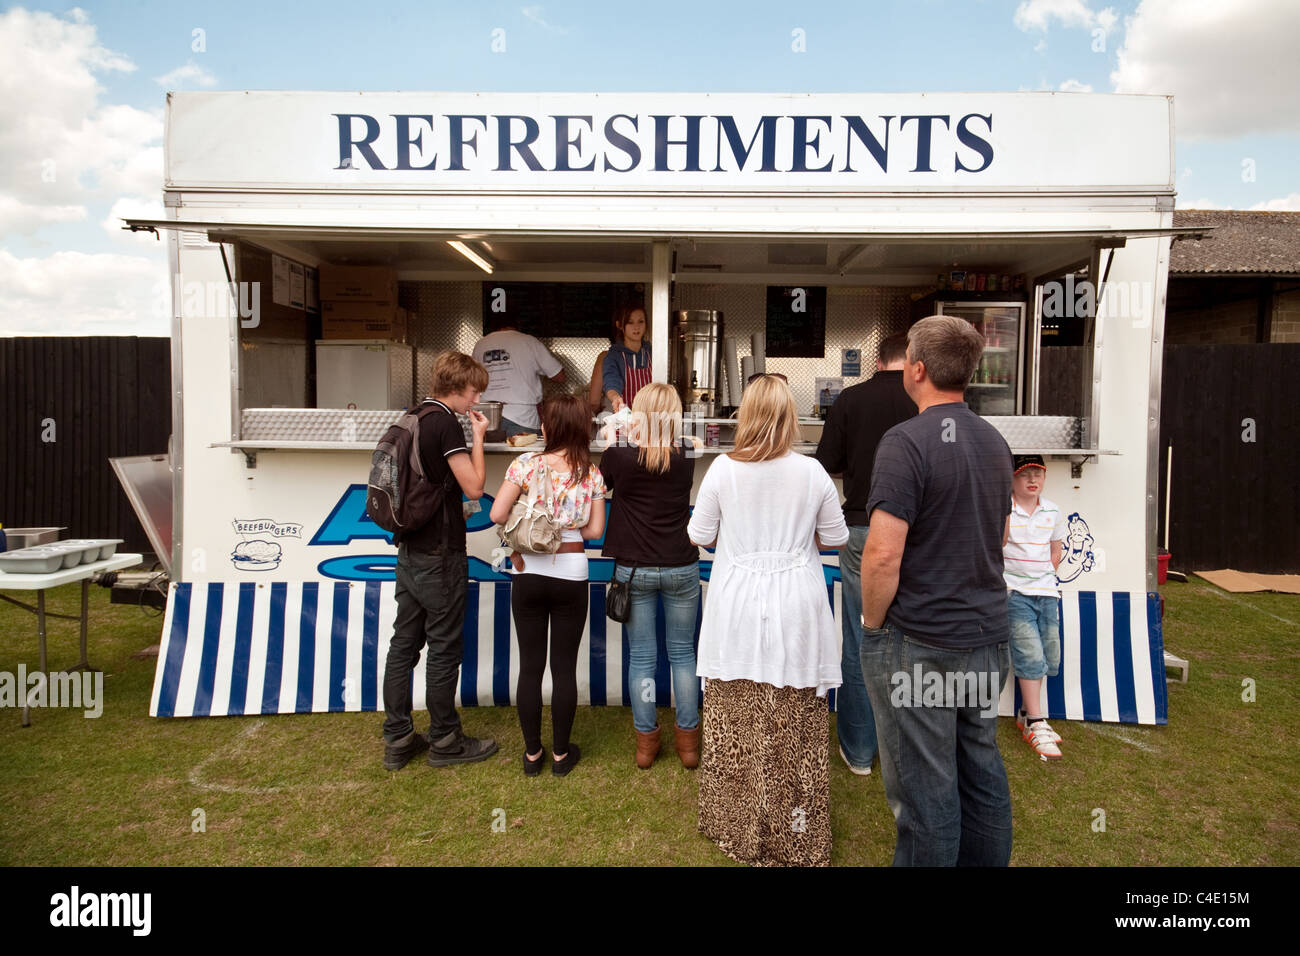 A queue at a refreshments stall - Stock Image